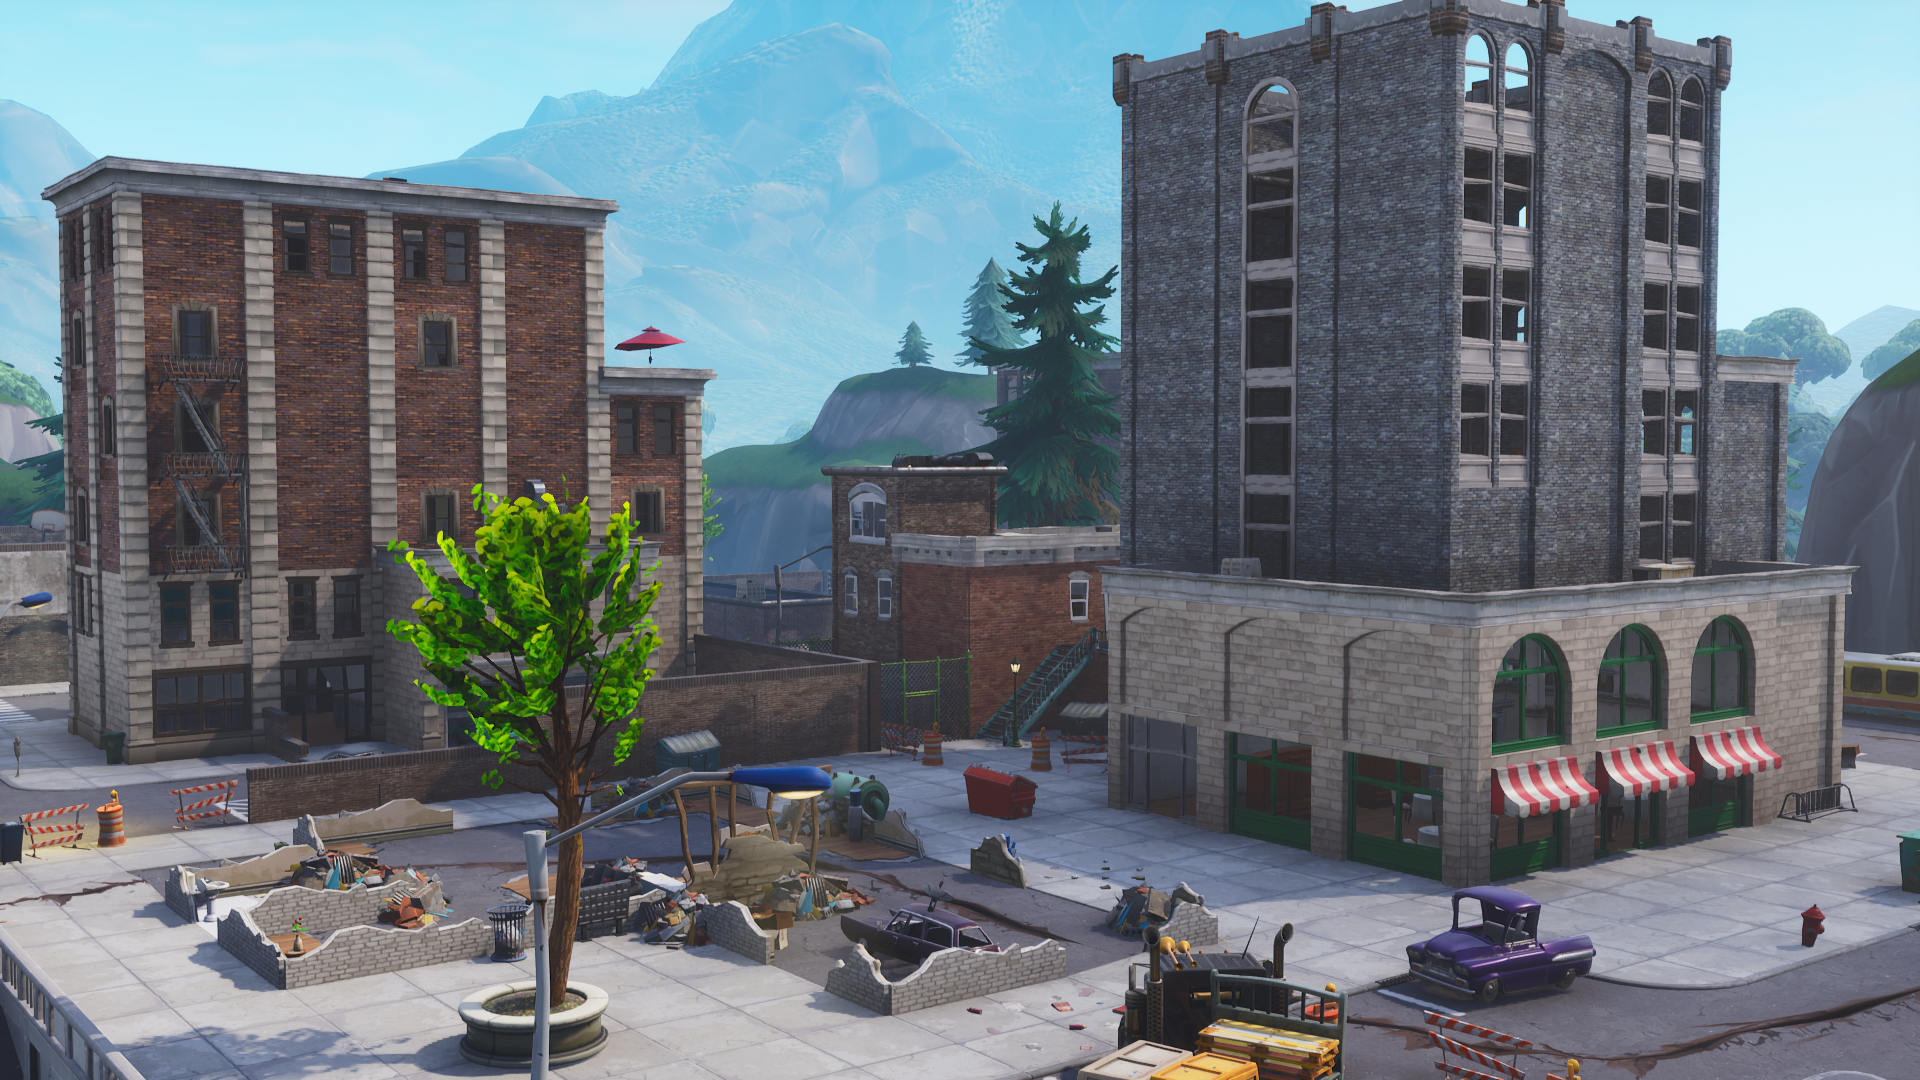 Fortnite Tilted Towers Background Png.